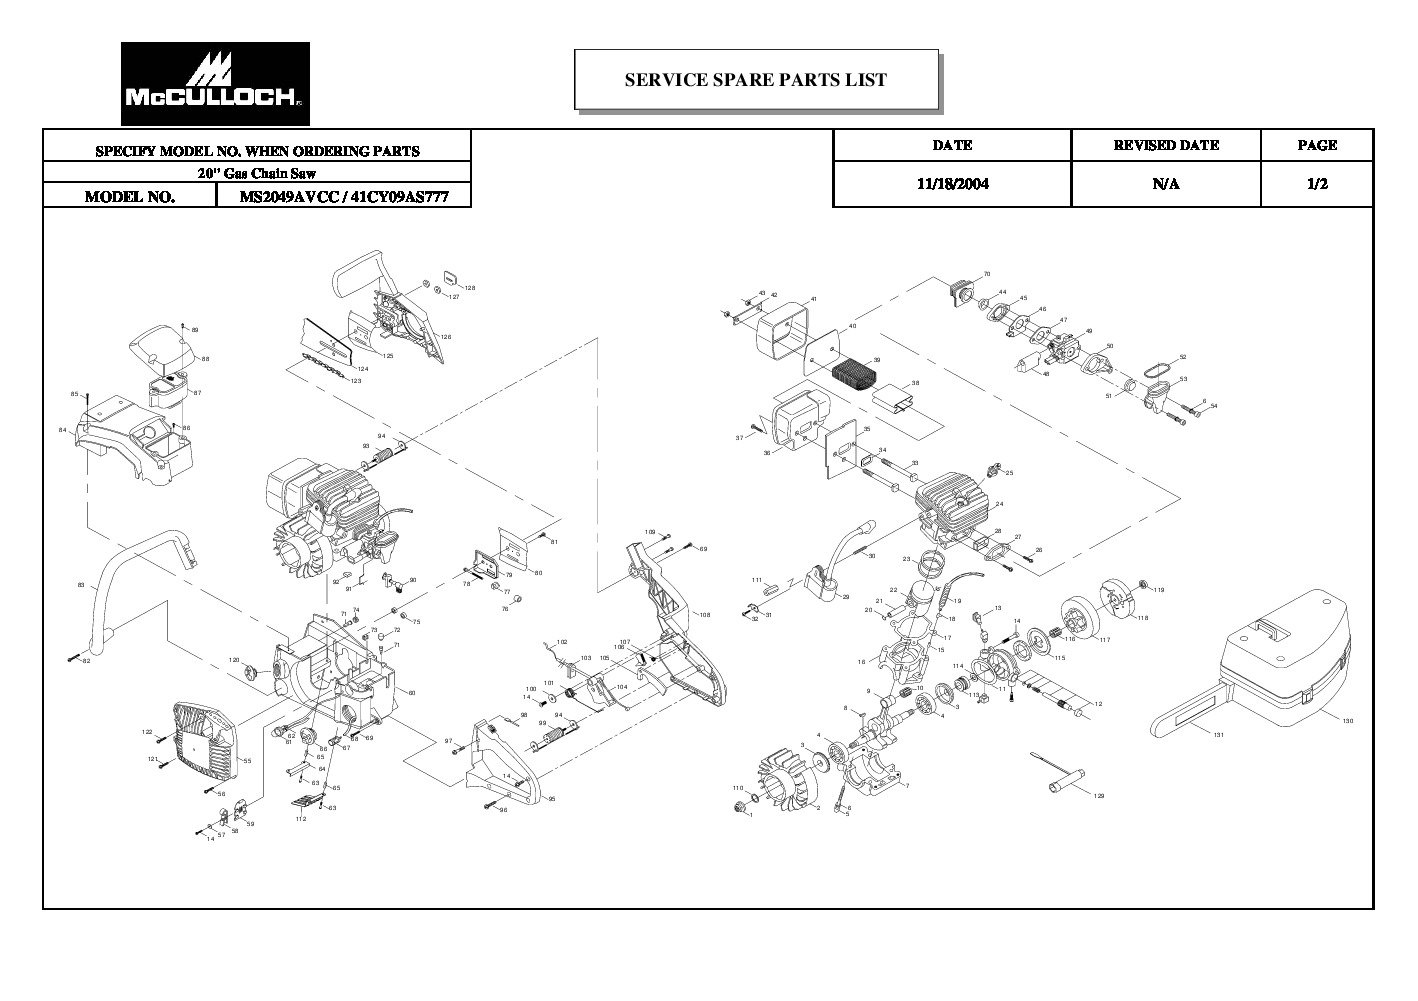 2005 Chevy Avalanche 1500 Parts Manual